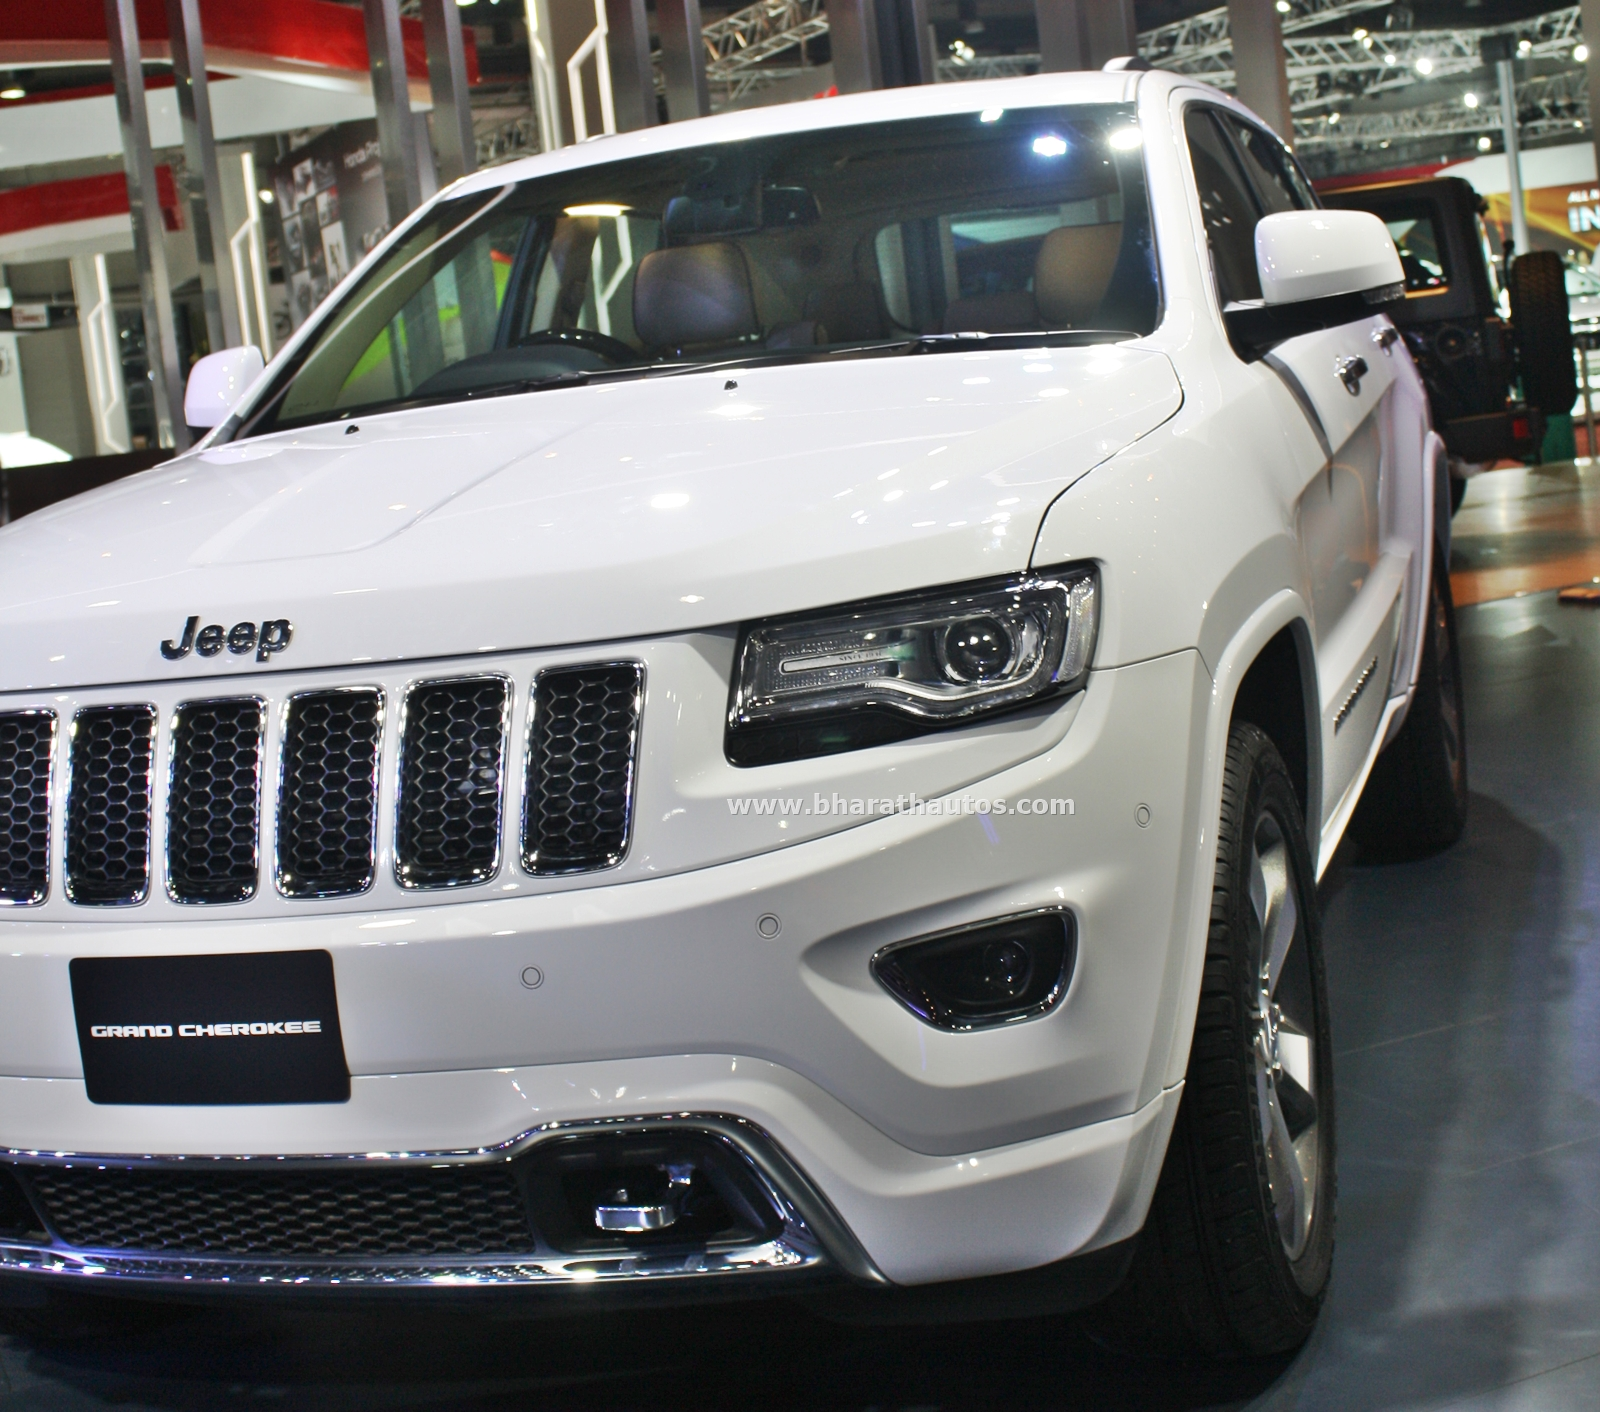 2016 Jeep Cherokee Transmission: Jeep At The 2016 Indian Auto Expo